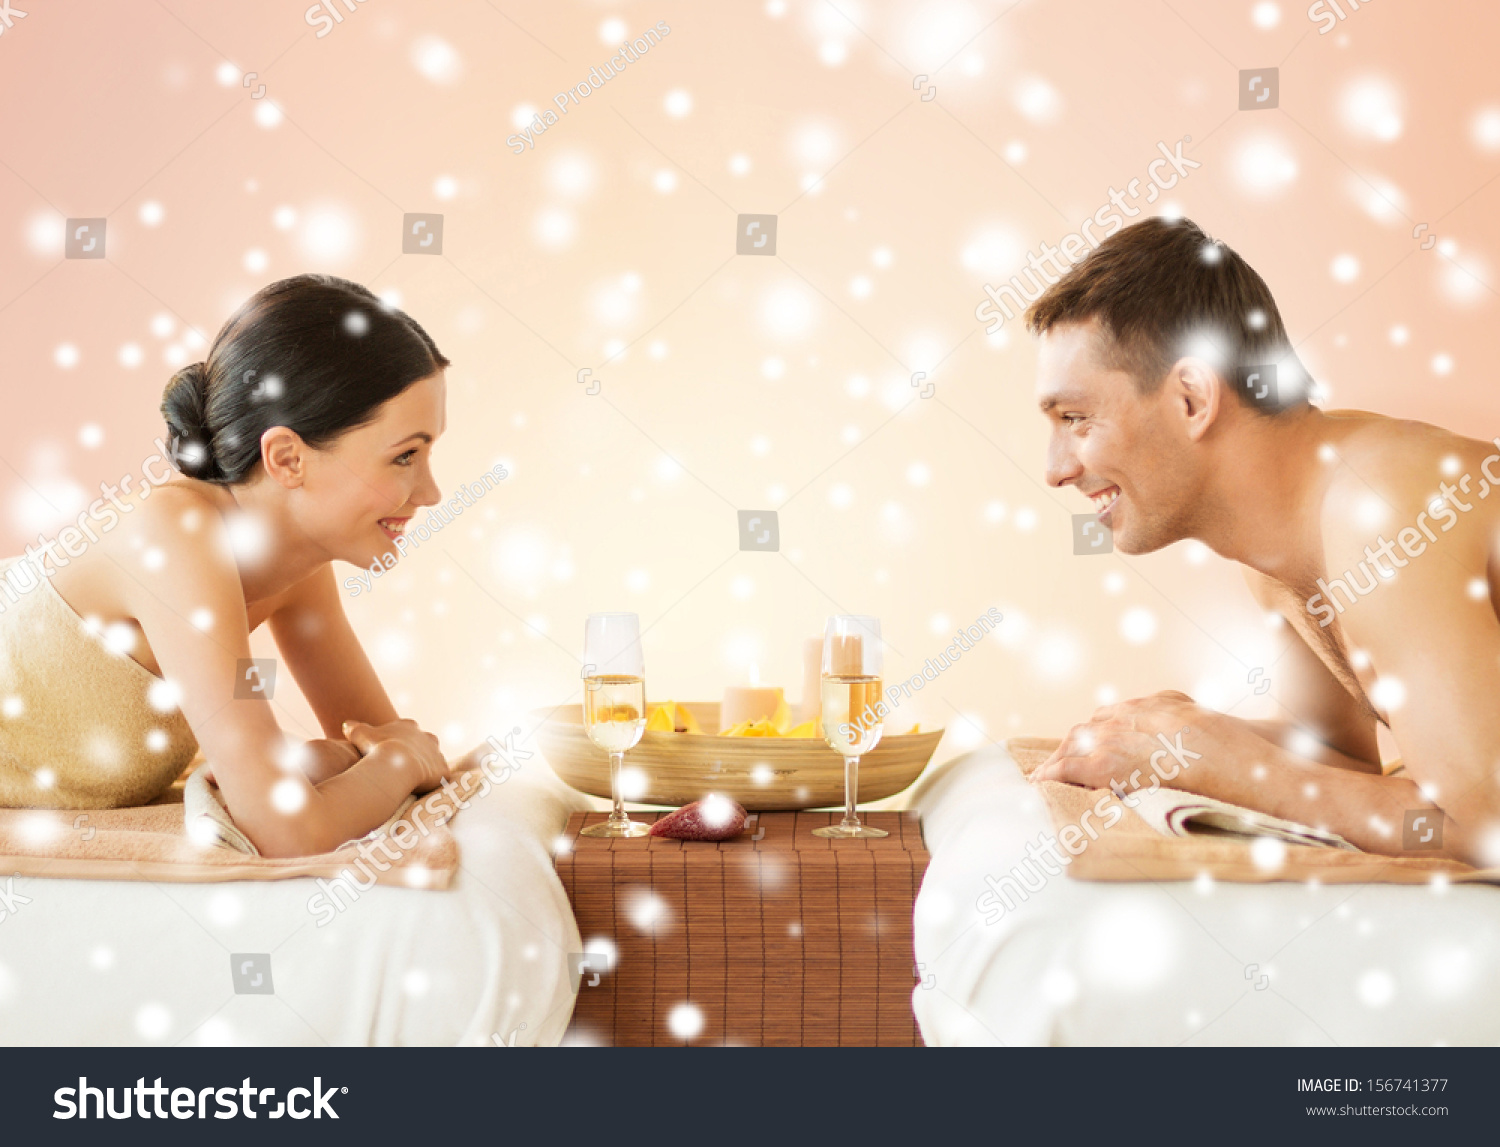 Health beauty honeymoon vacation concept couple stock for Health spa vacations for couples